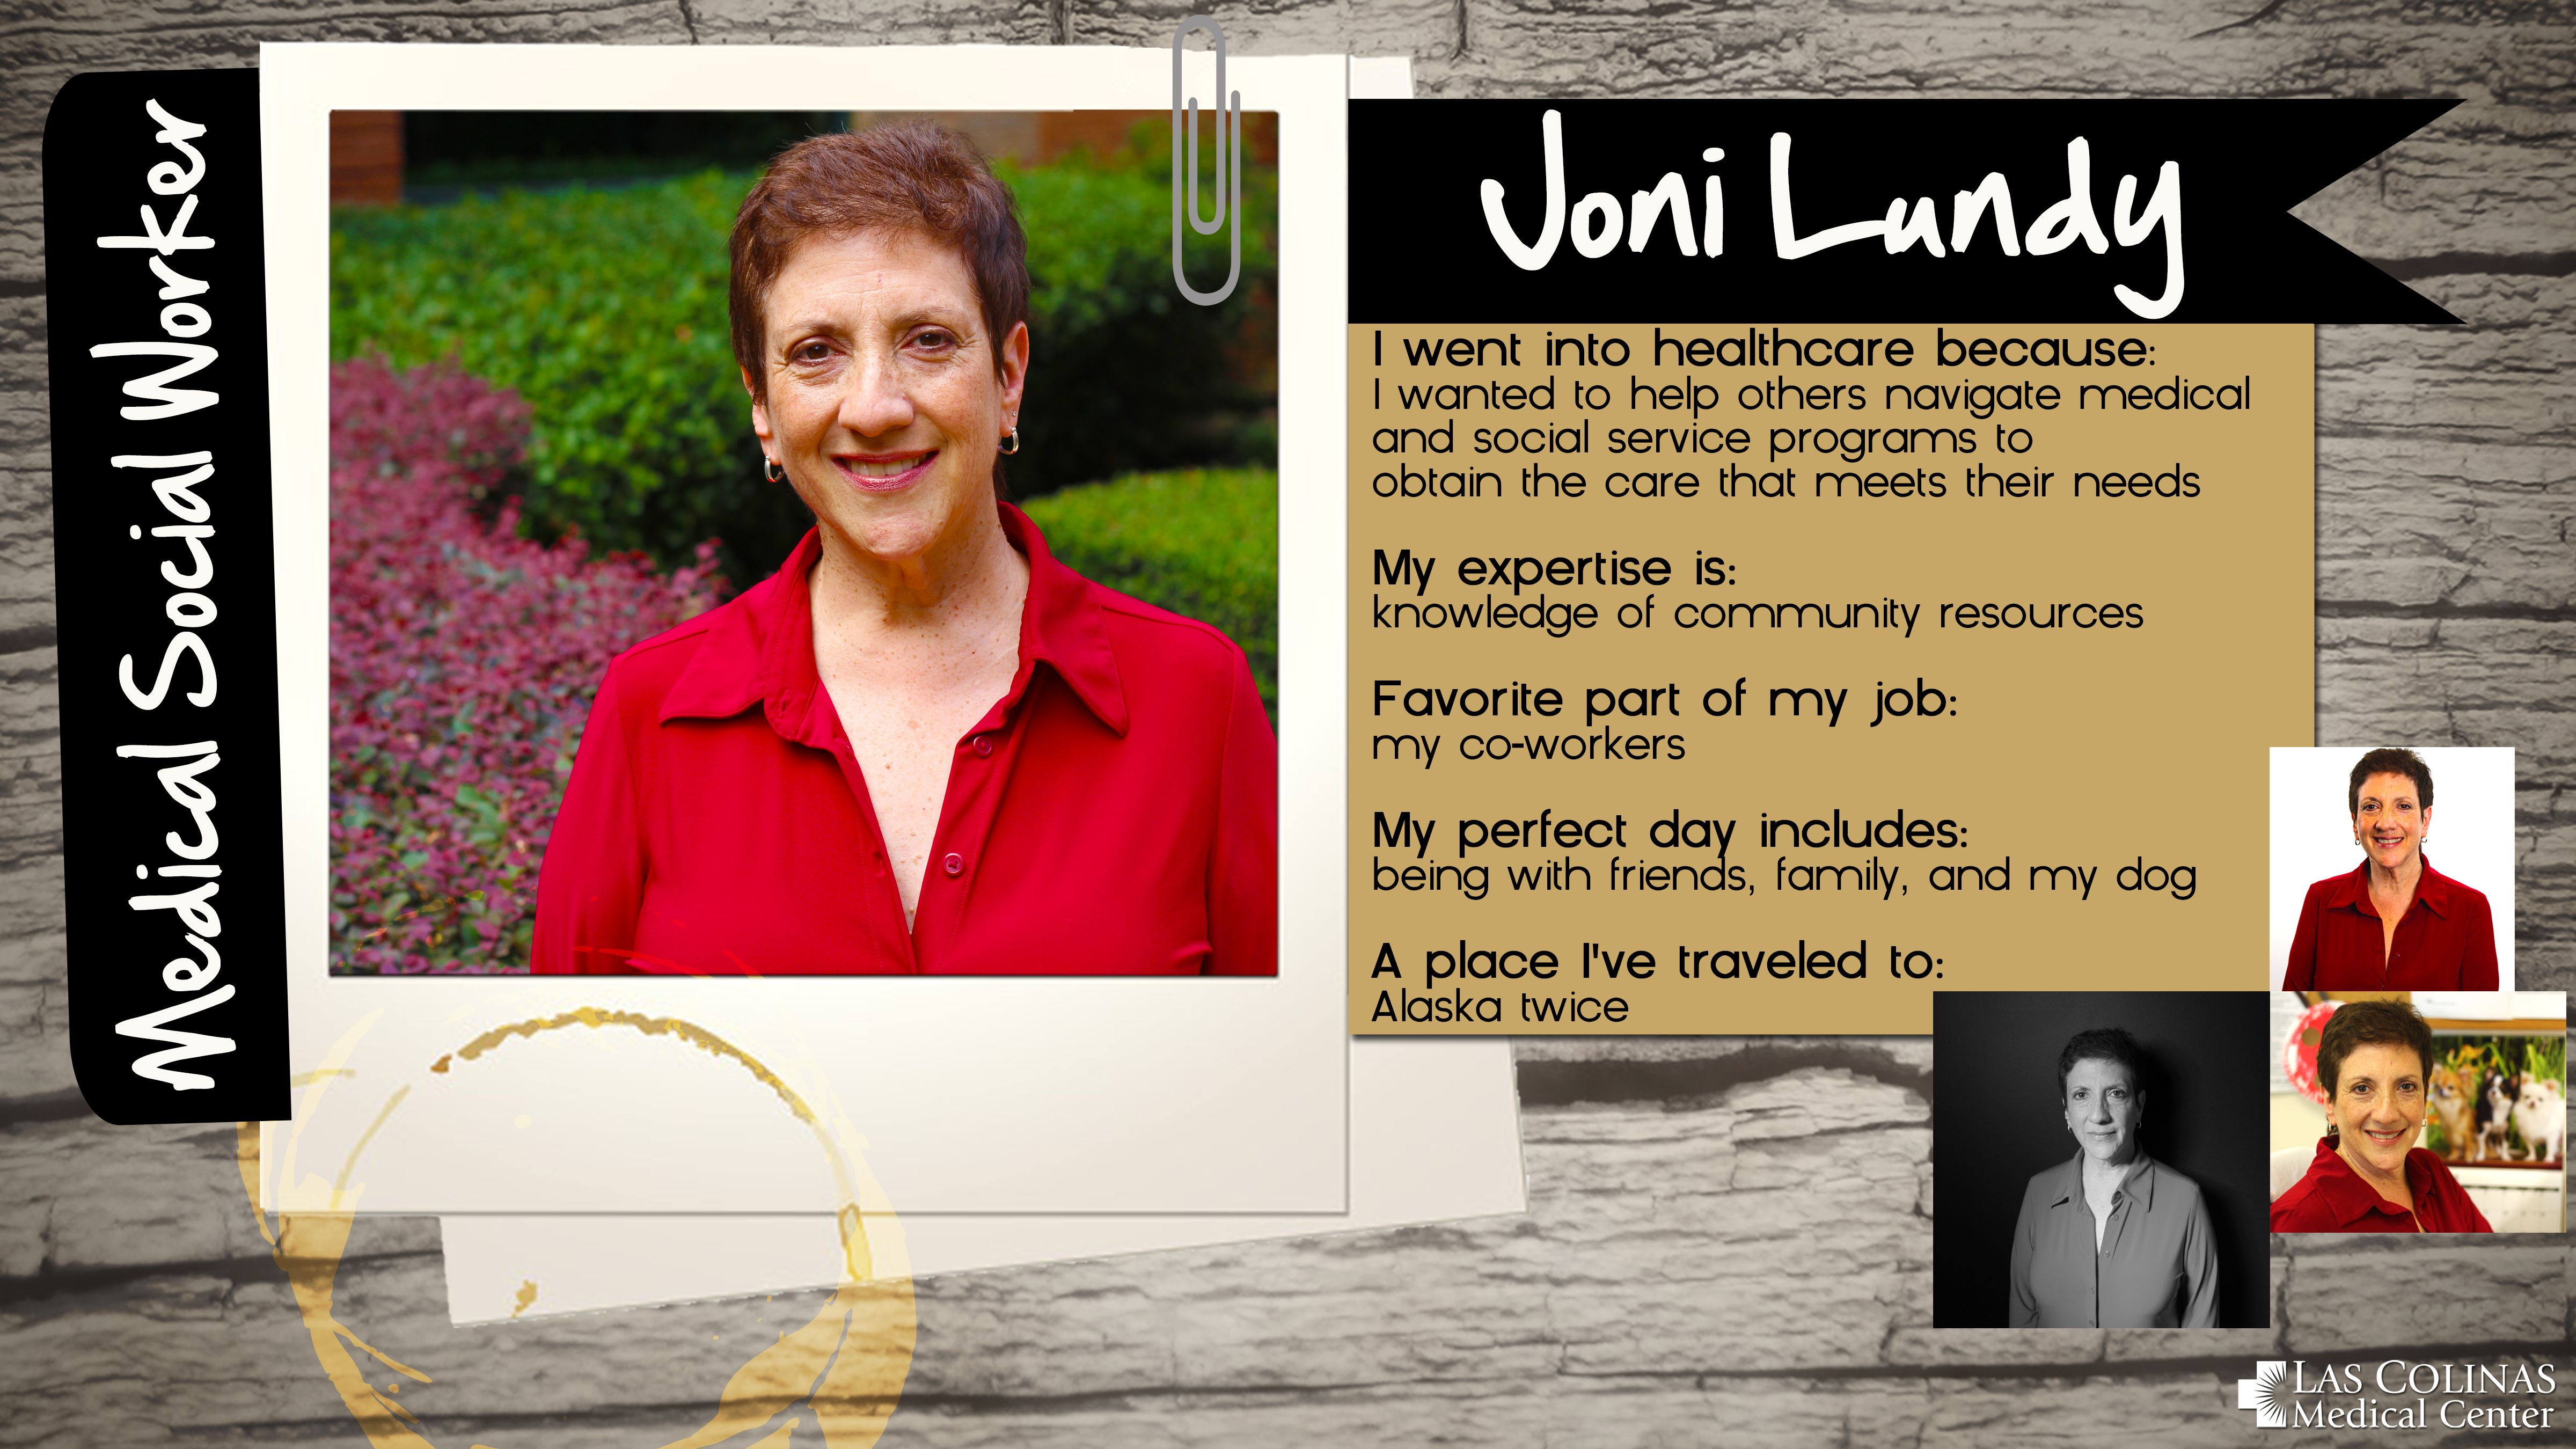 Meet one of our Medical Social Workers, Joni Lundy. We're